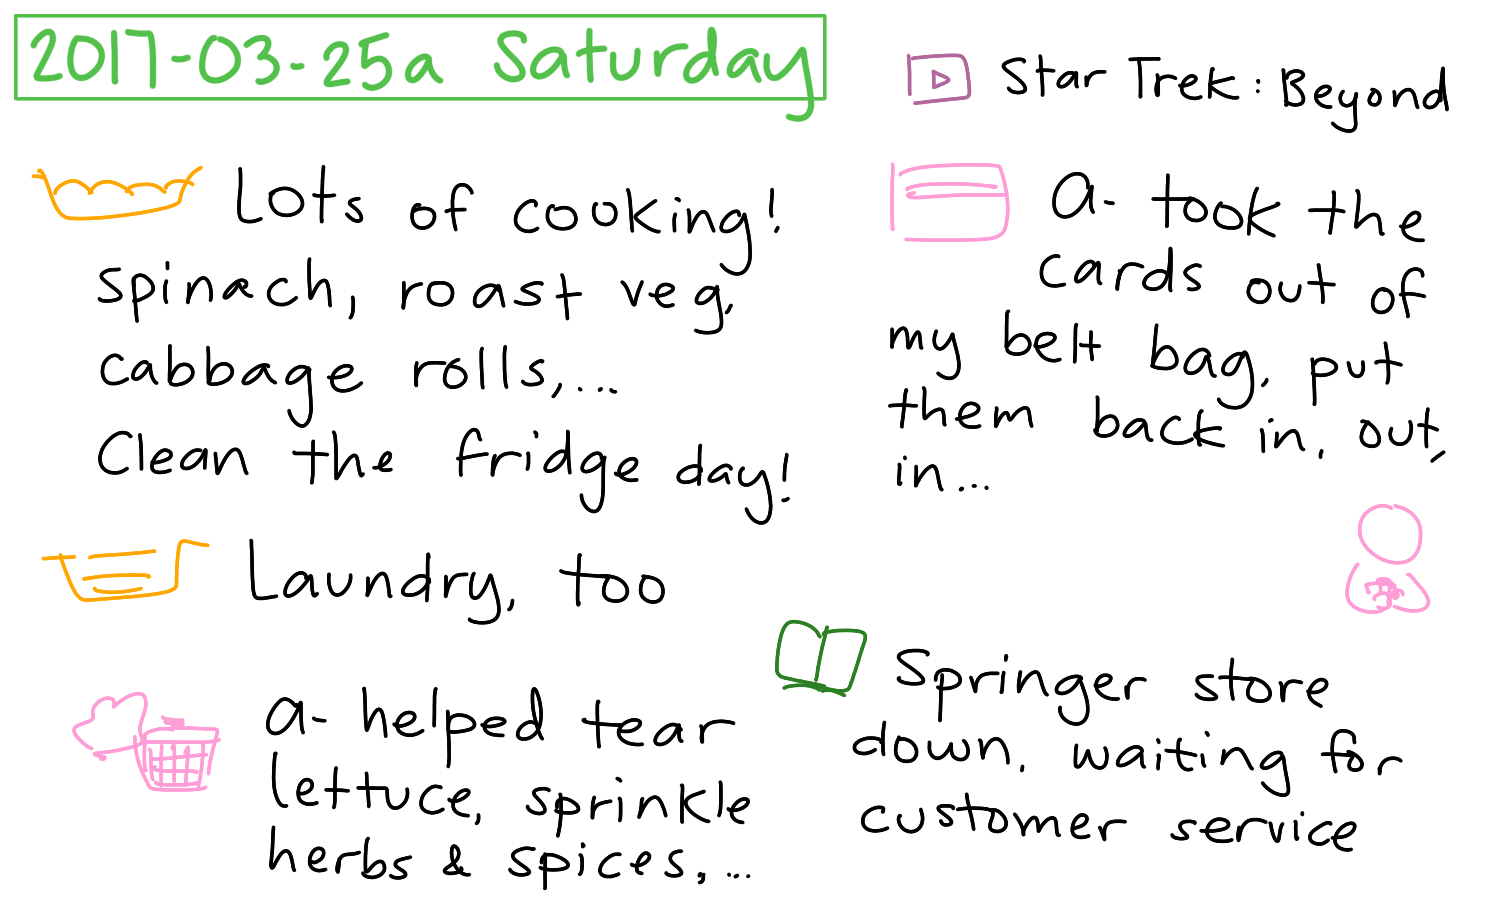 2017-03-25a Saturday #daily #journal.png